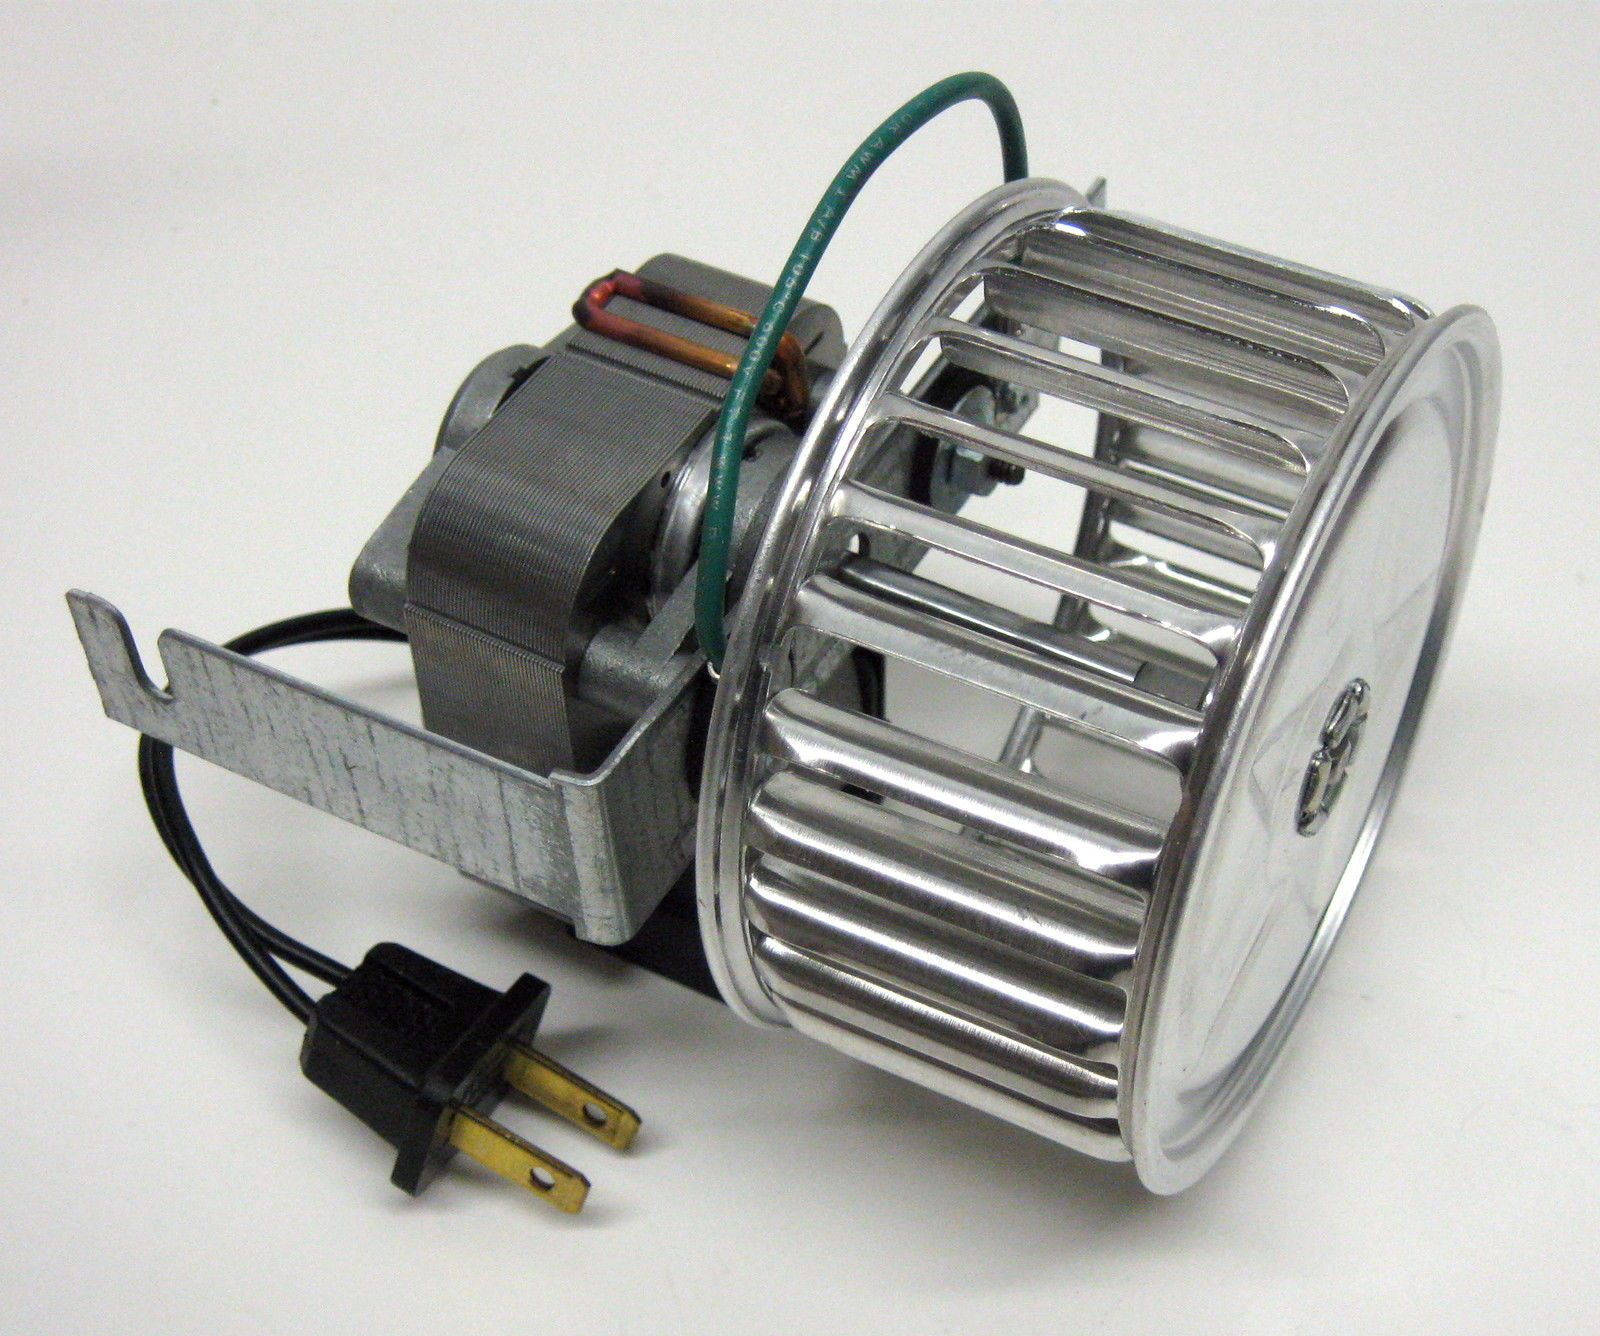 82229000 genuine nutone broan oem vent bath fan motor for model 9415 c 82230 - Bathroom Fan Motor Replacement